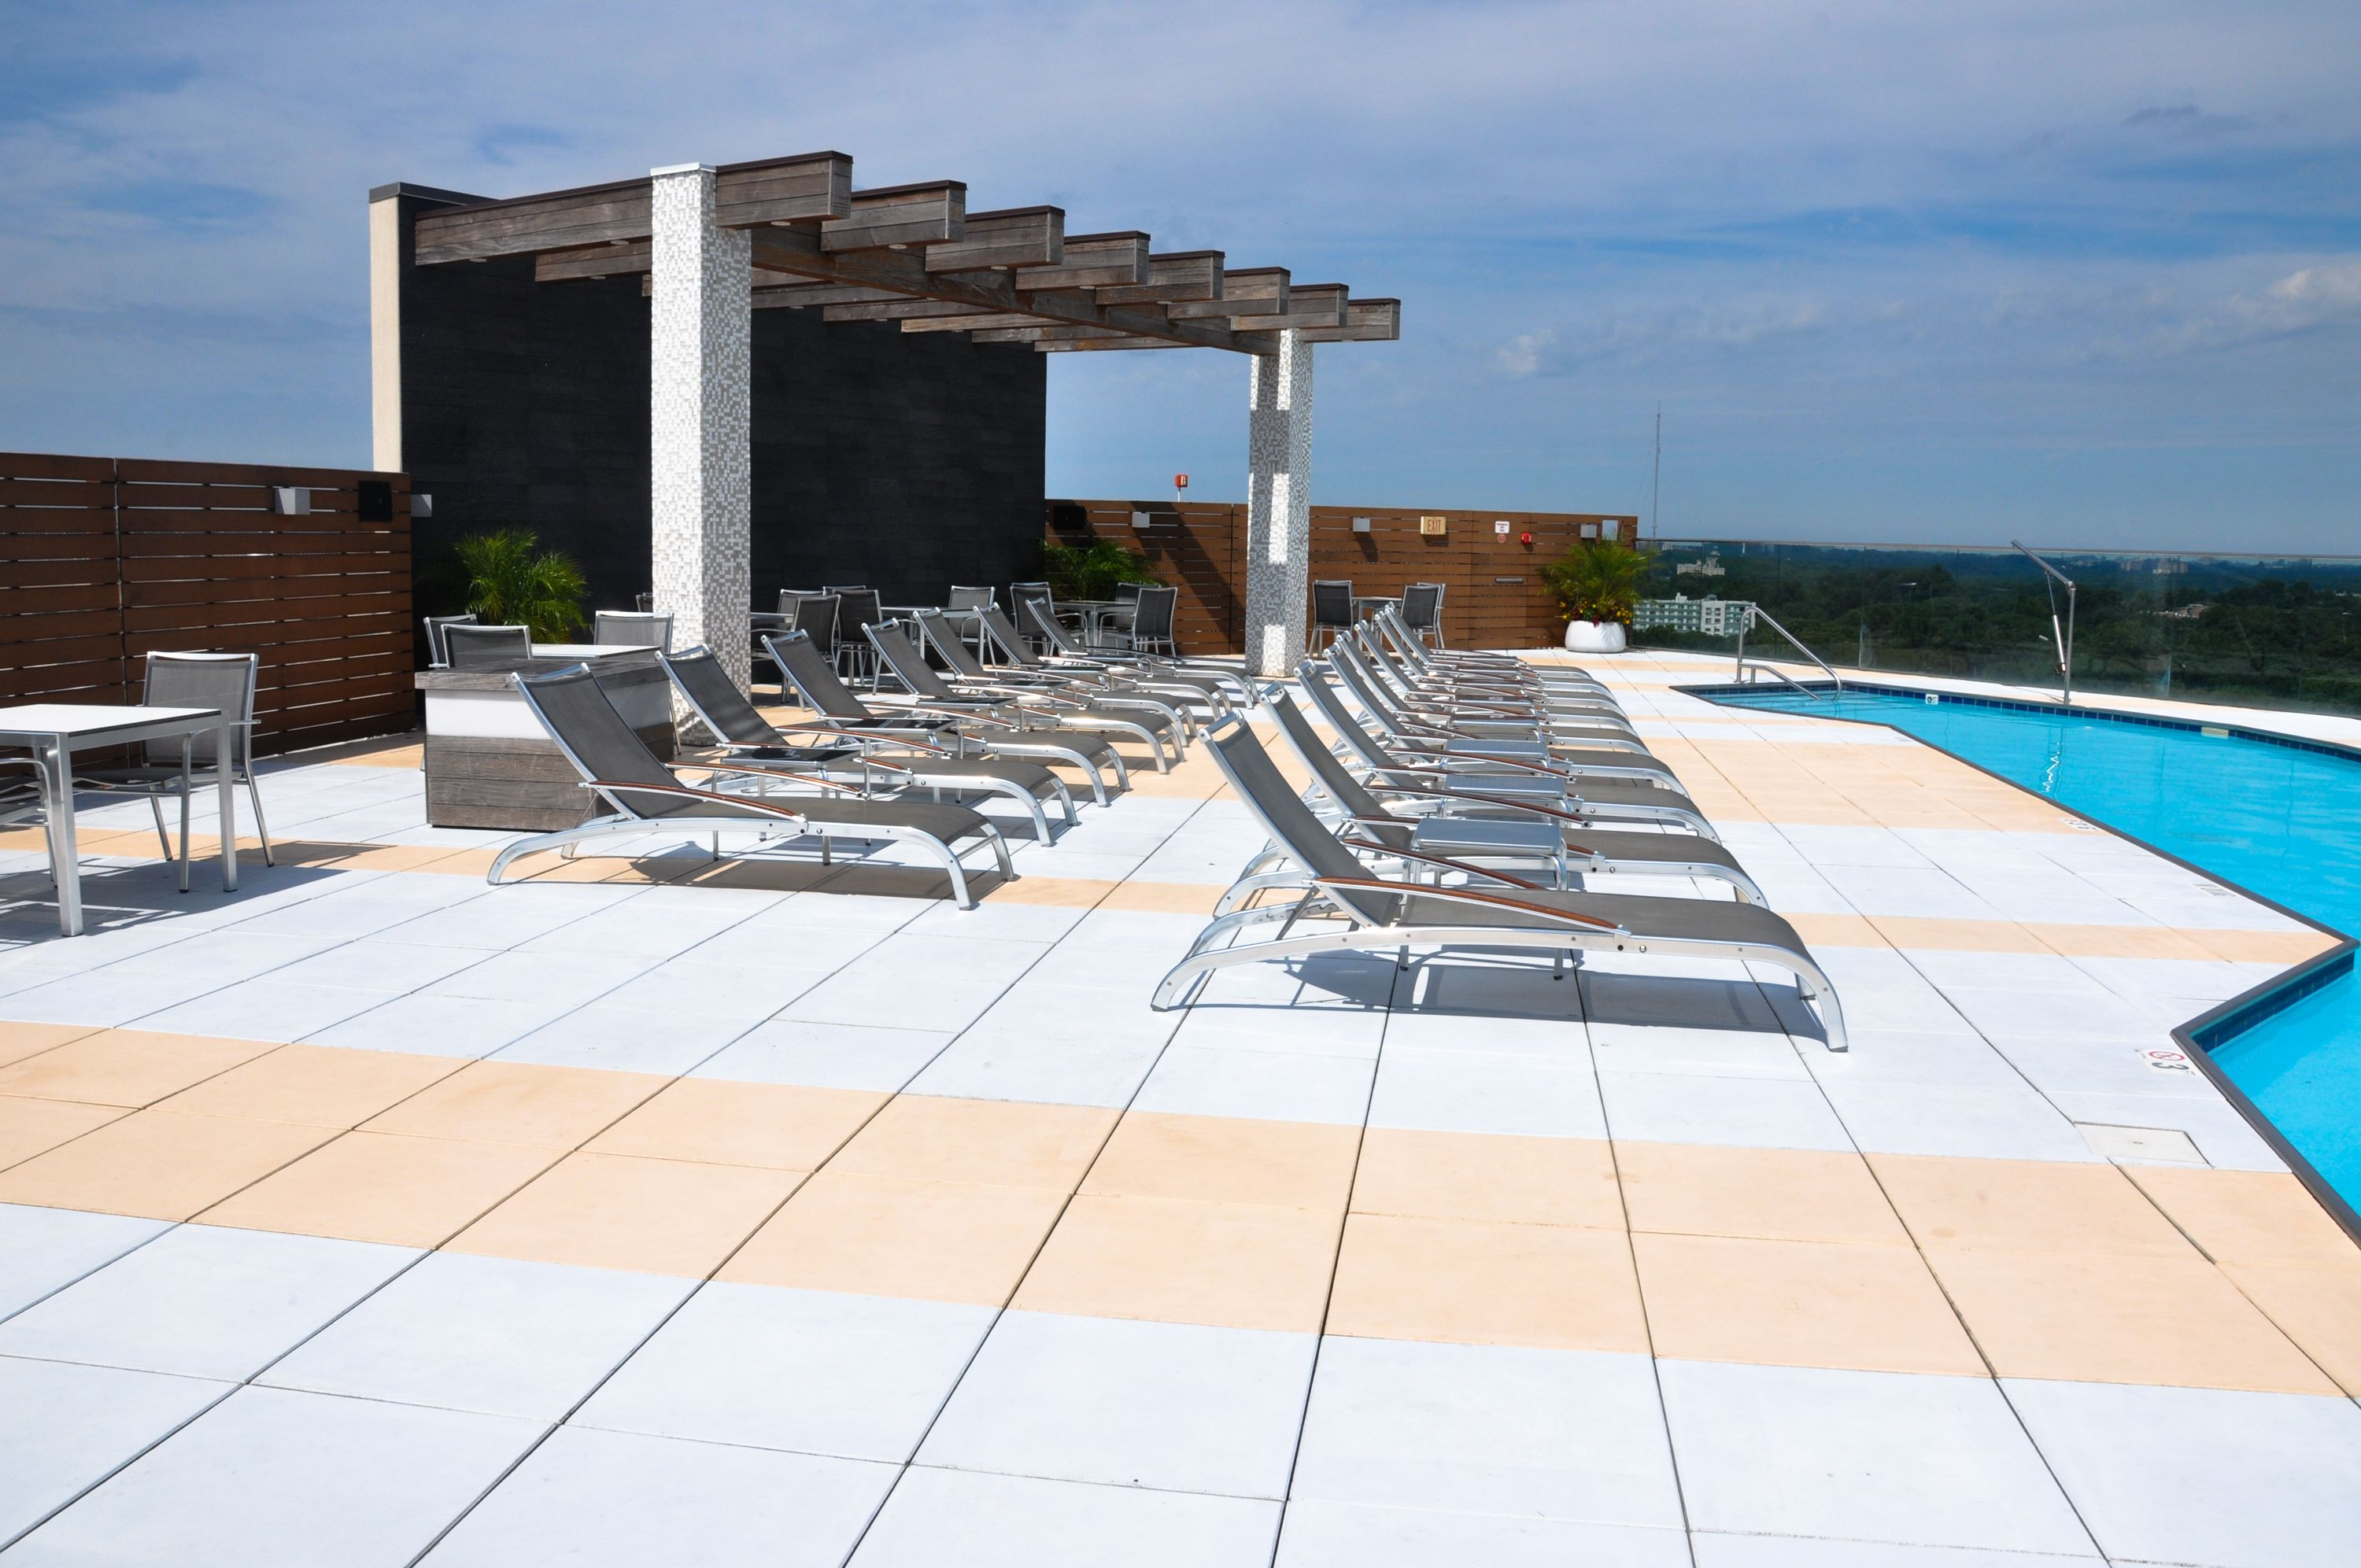 The Point At Silver Spring Apartments Md Resort Style Rooftop Pool Ow Ly Zrqyx Rooftop Pool Apartmentbuildin Rooftop Pool Apartment Building Resort Style